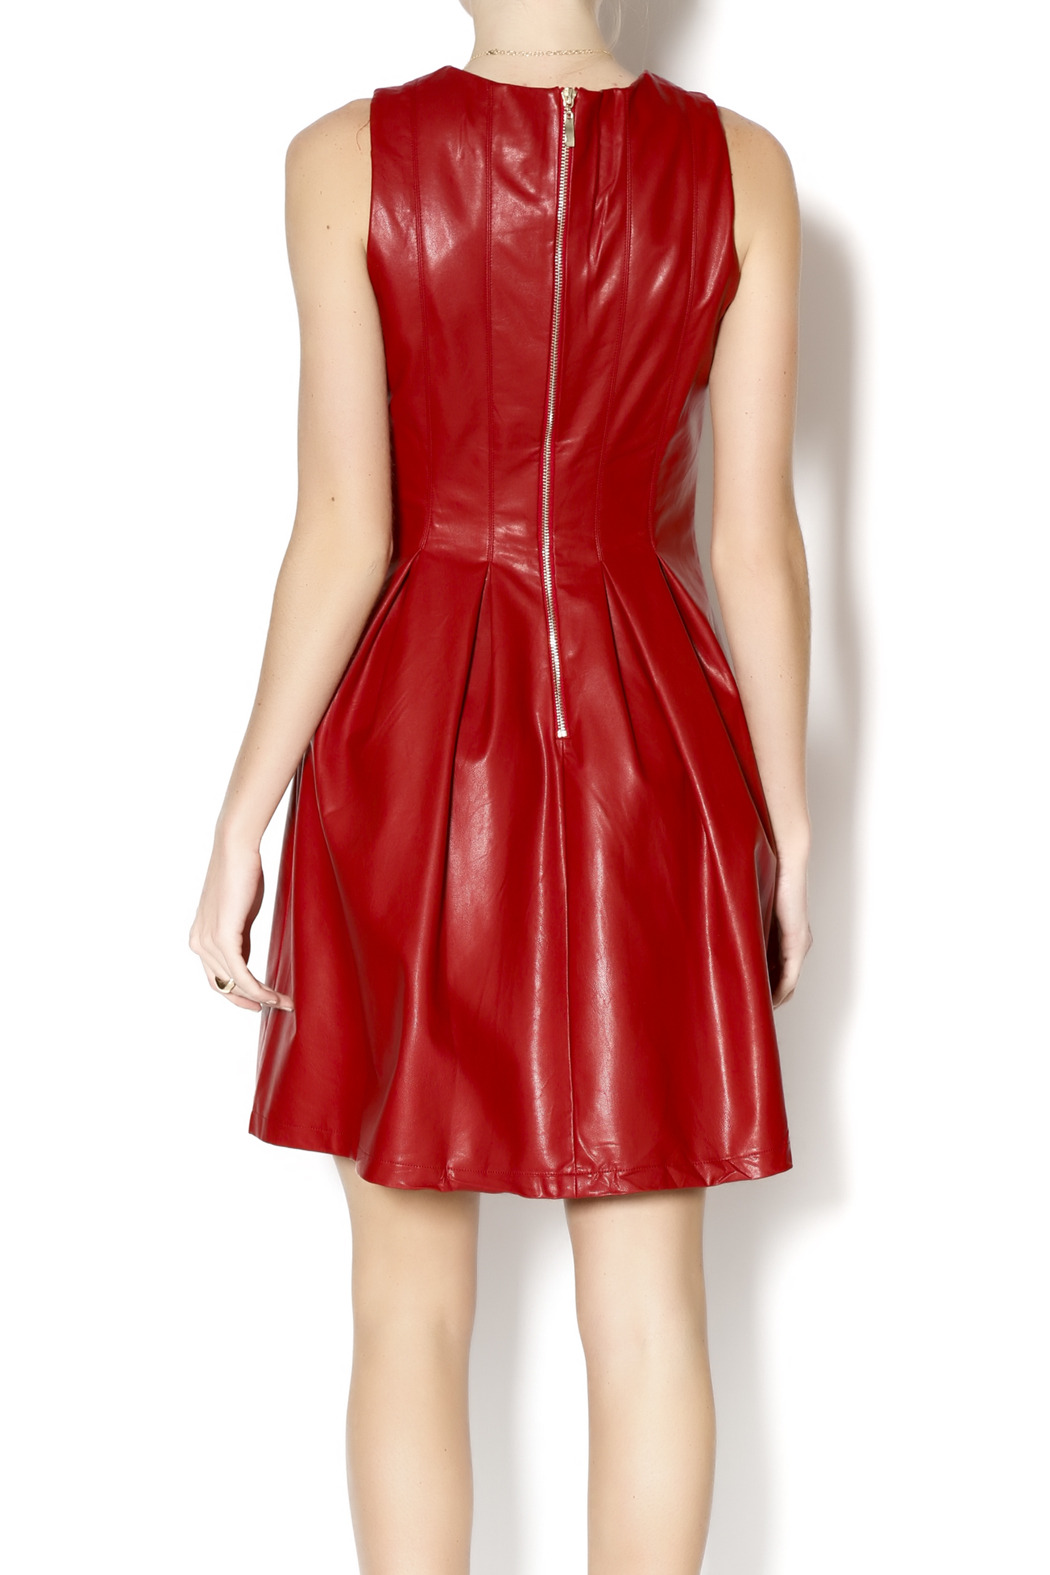 Red pleather dress